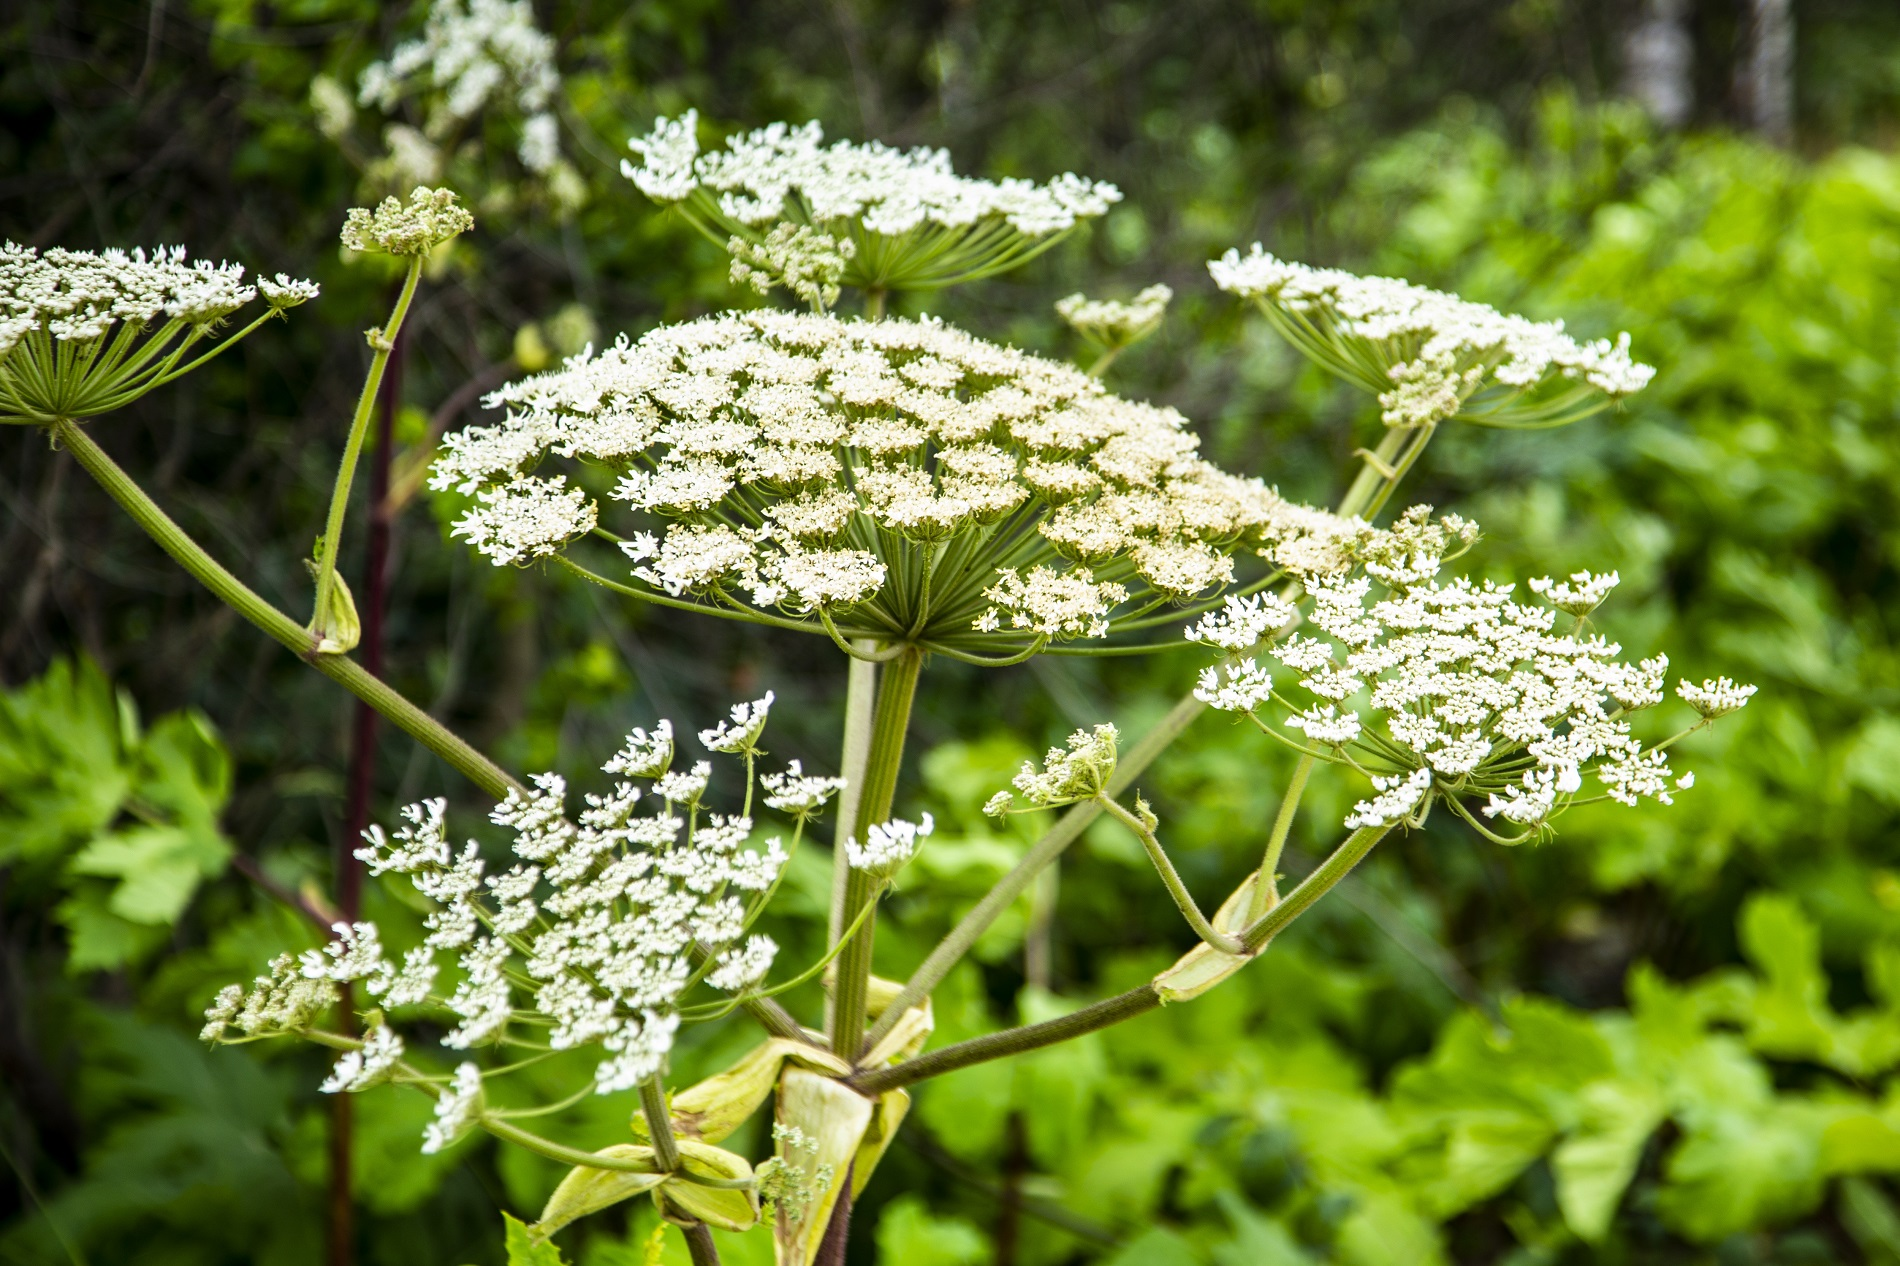 Hogweed weed control Essex, Hertfordshire and Bedfordshire